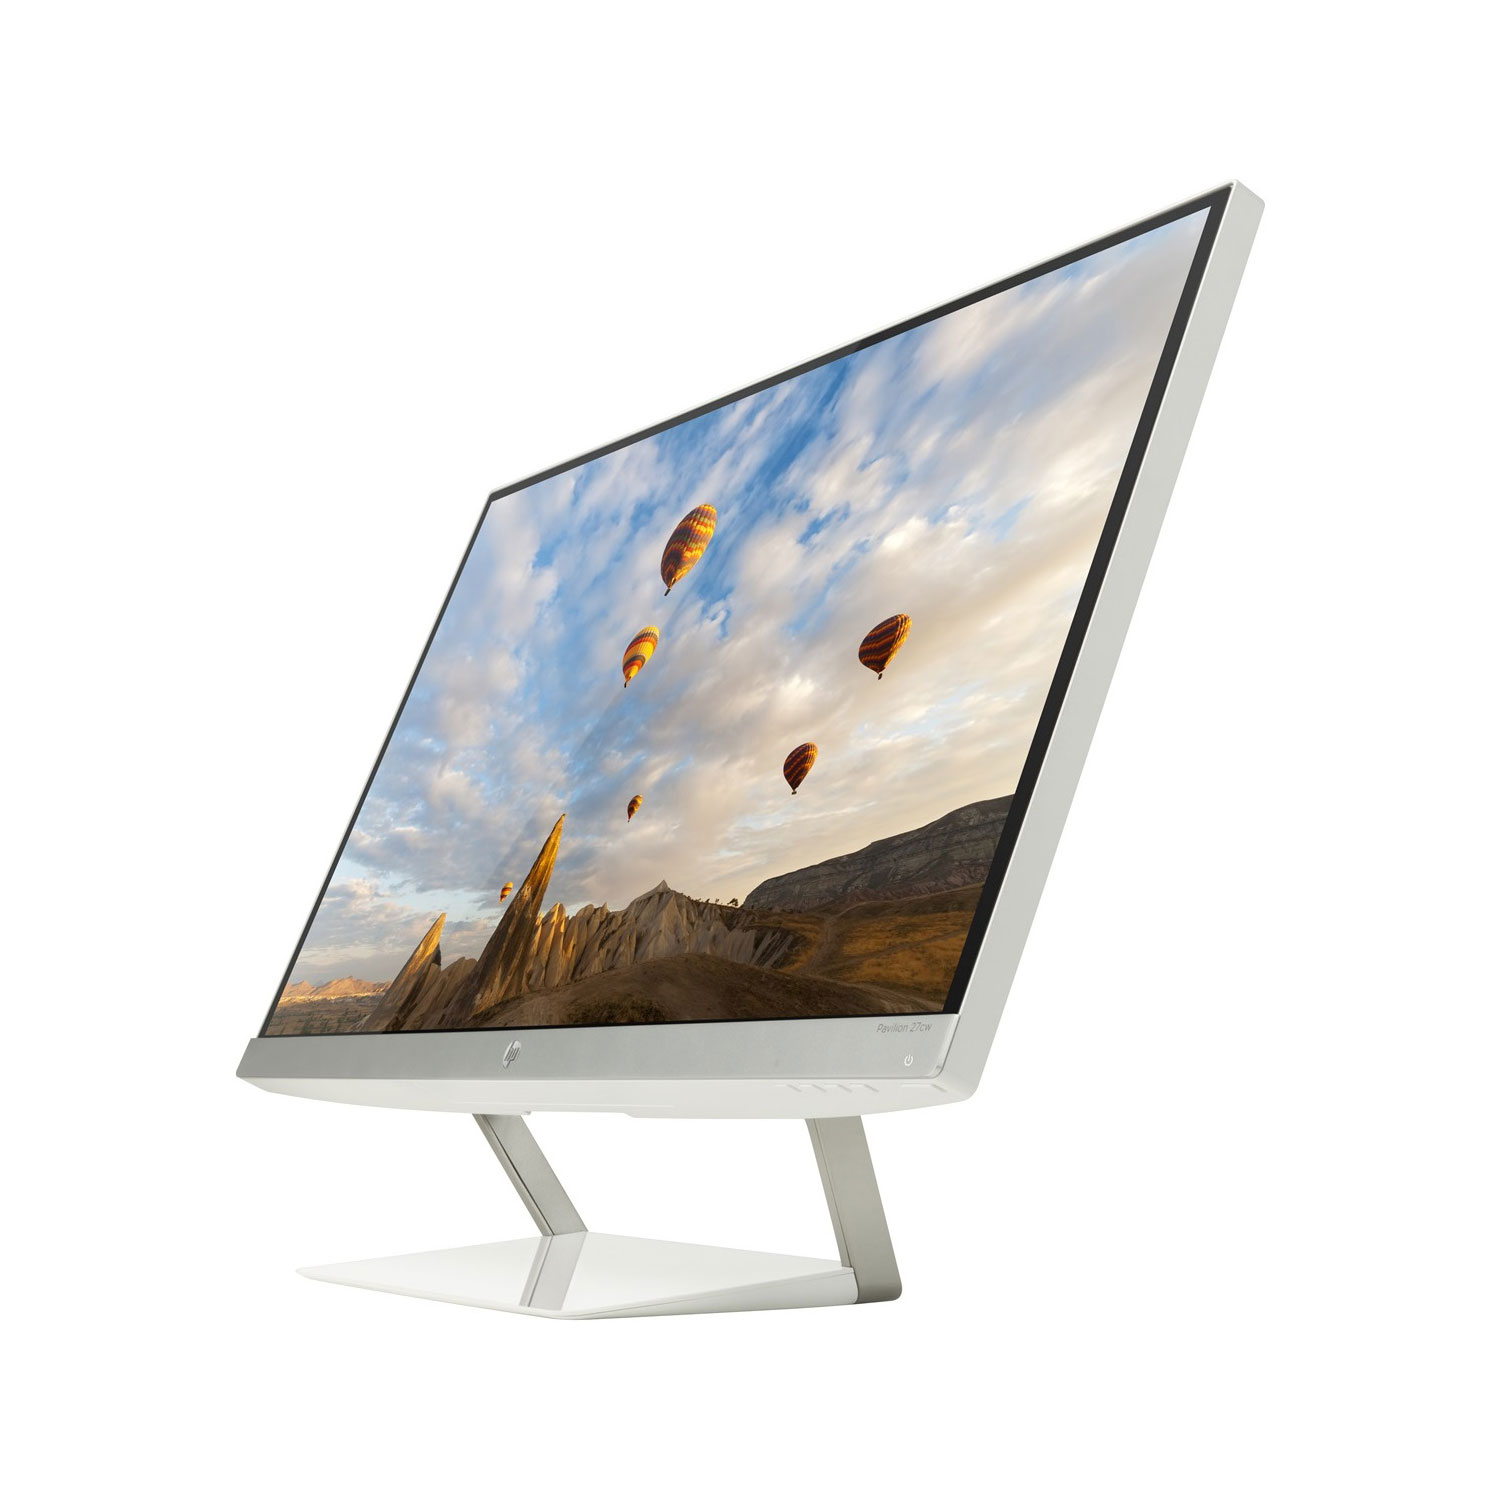 Hp 27 Led Pavilion 27xw Ecran Pc Hp Sur